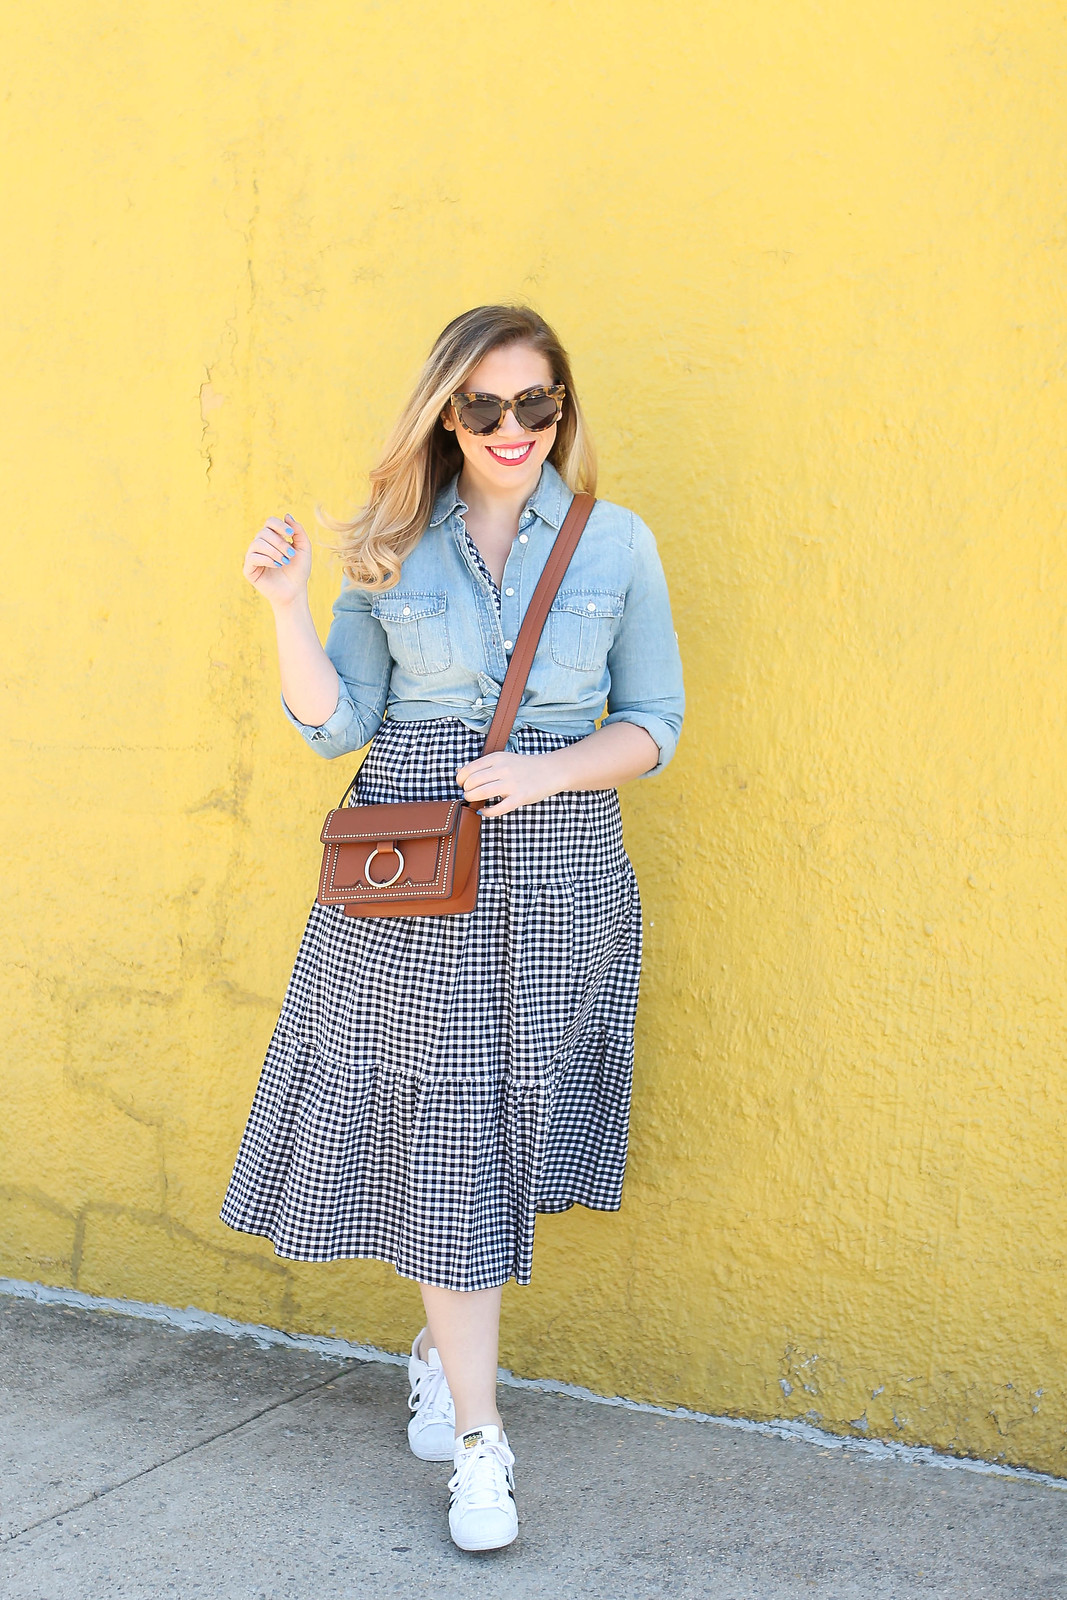 Who What Wear Sleeveless Ruffle Midi Gingham Dress JCrew Chambray Shirt Melie Biano Cherie Bag Adidas Superstar Sneakers Spring Outfit Yellow Wall